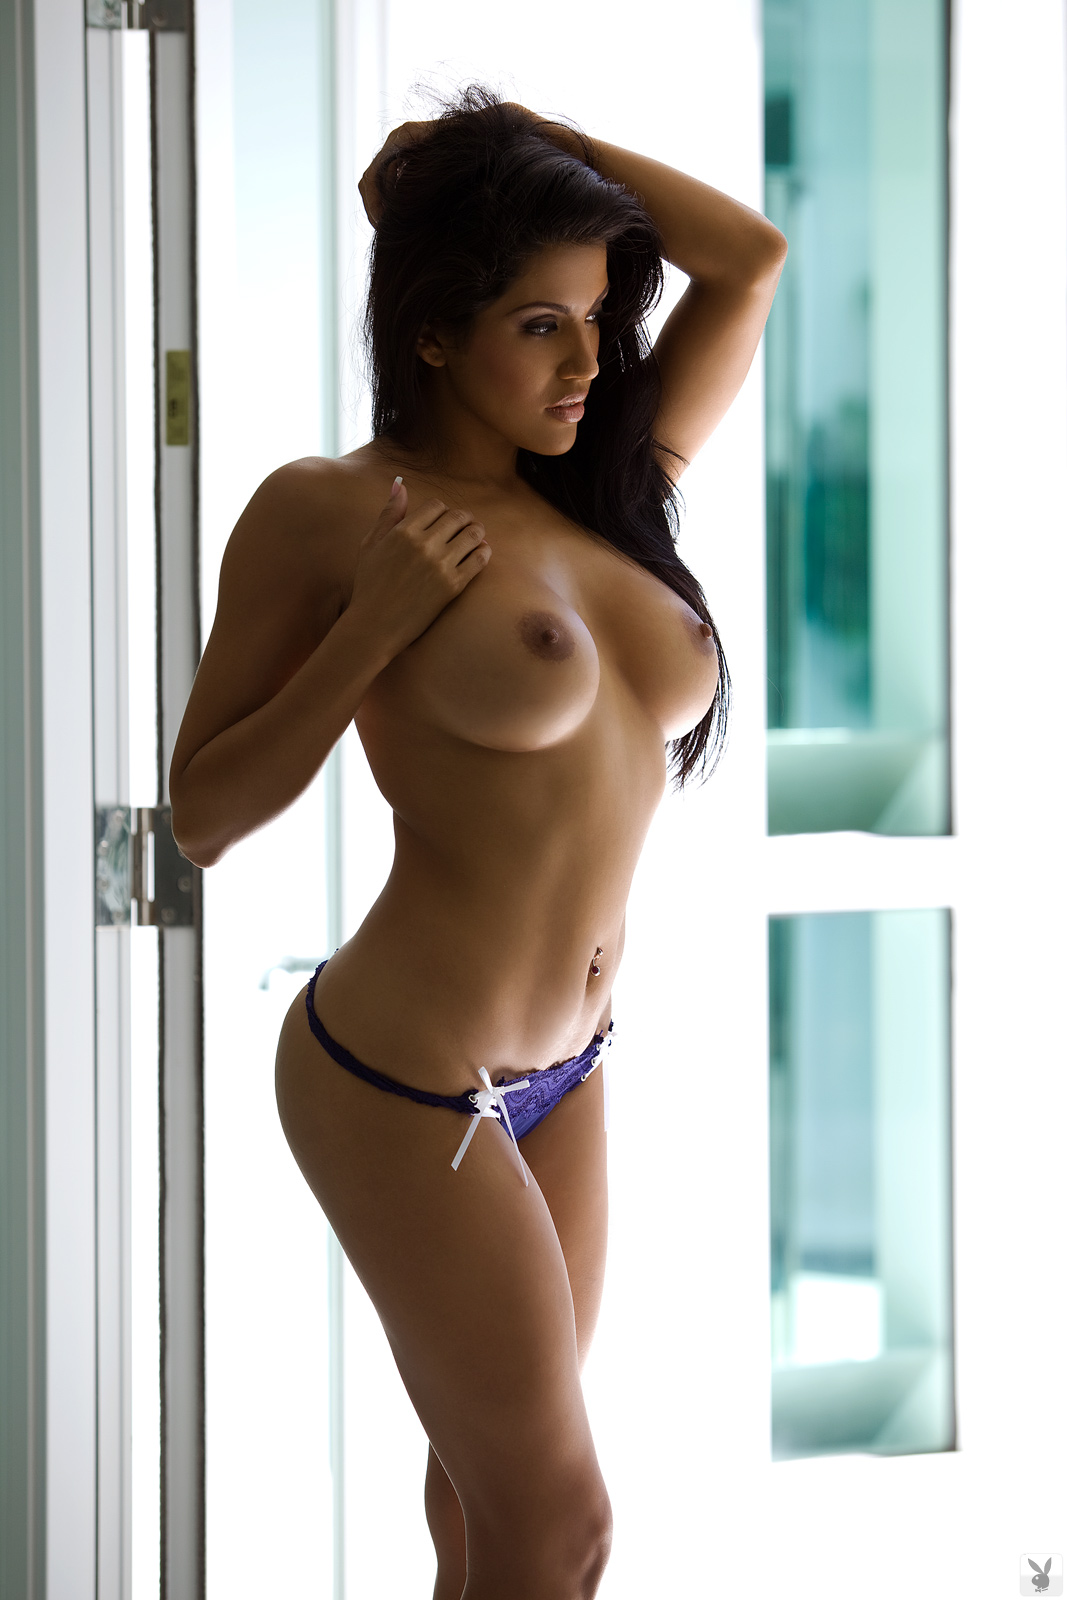 Xxx Hot Sexy Images